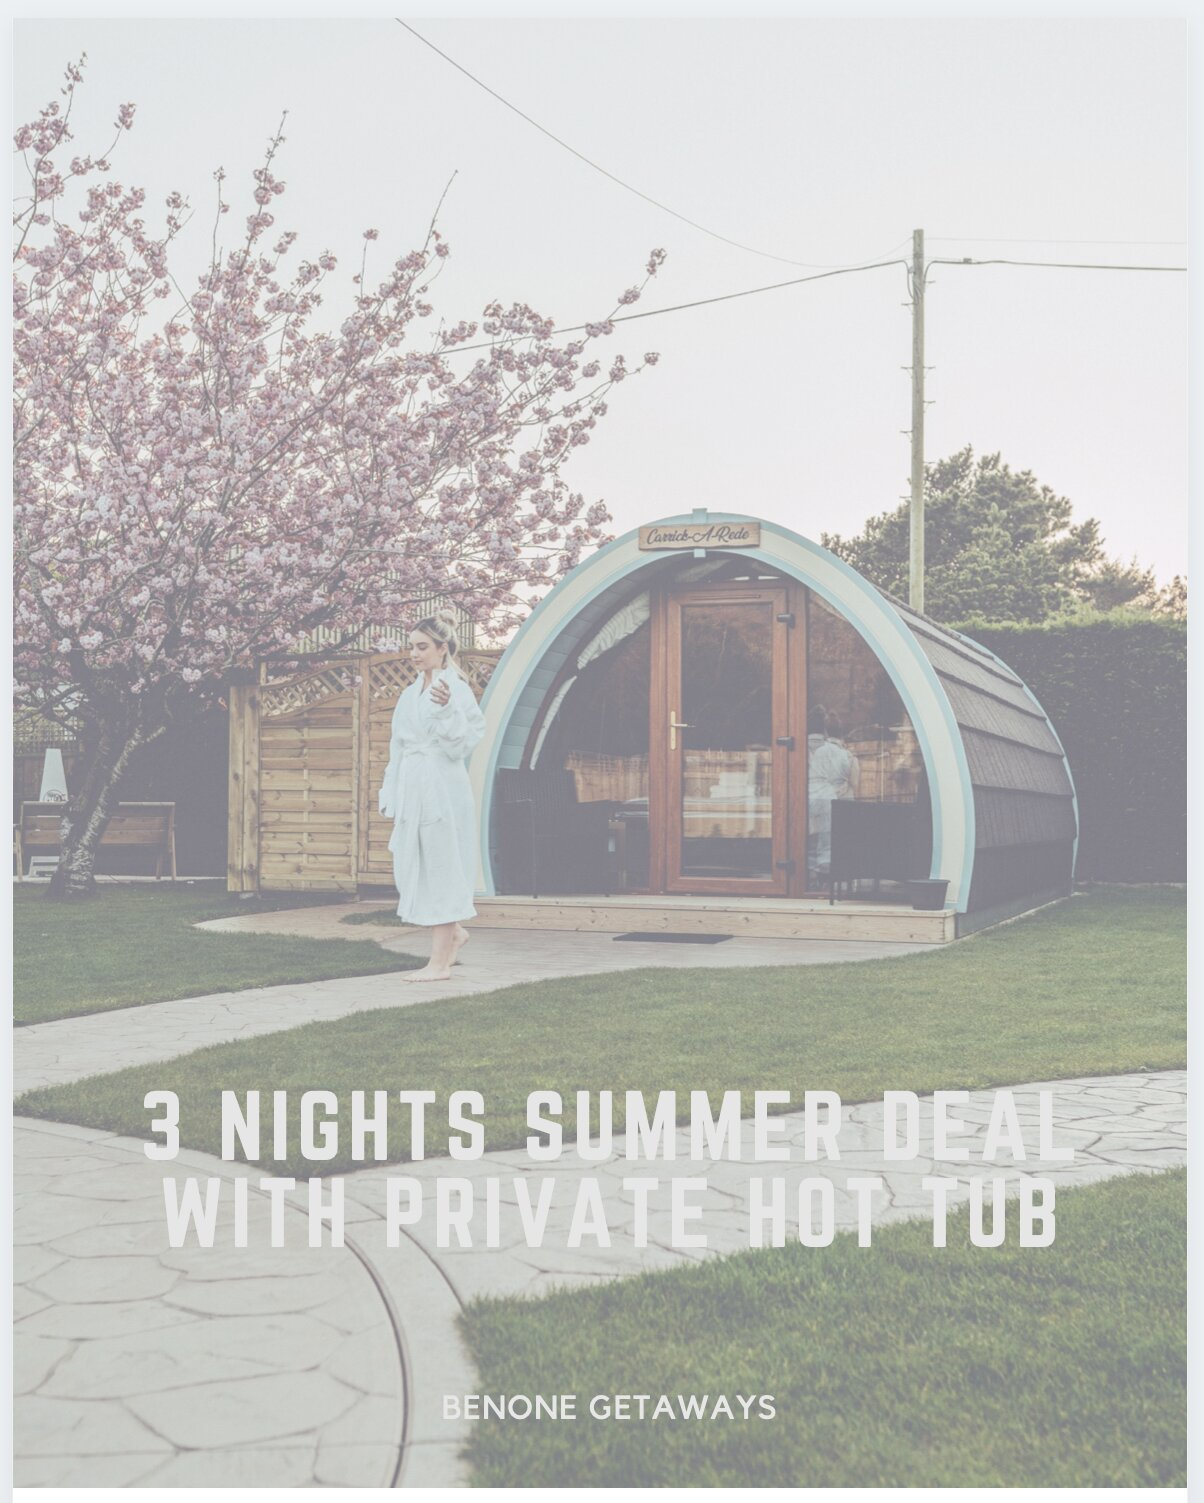 3 Night Summer Deal with Private Hot Tub